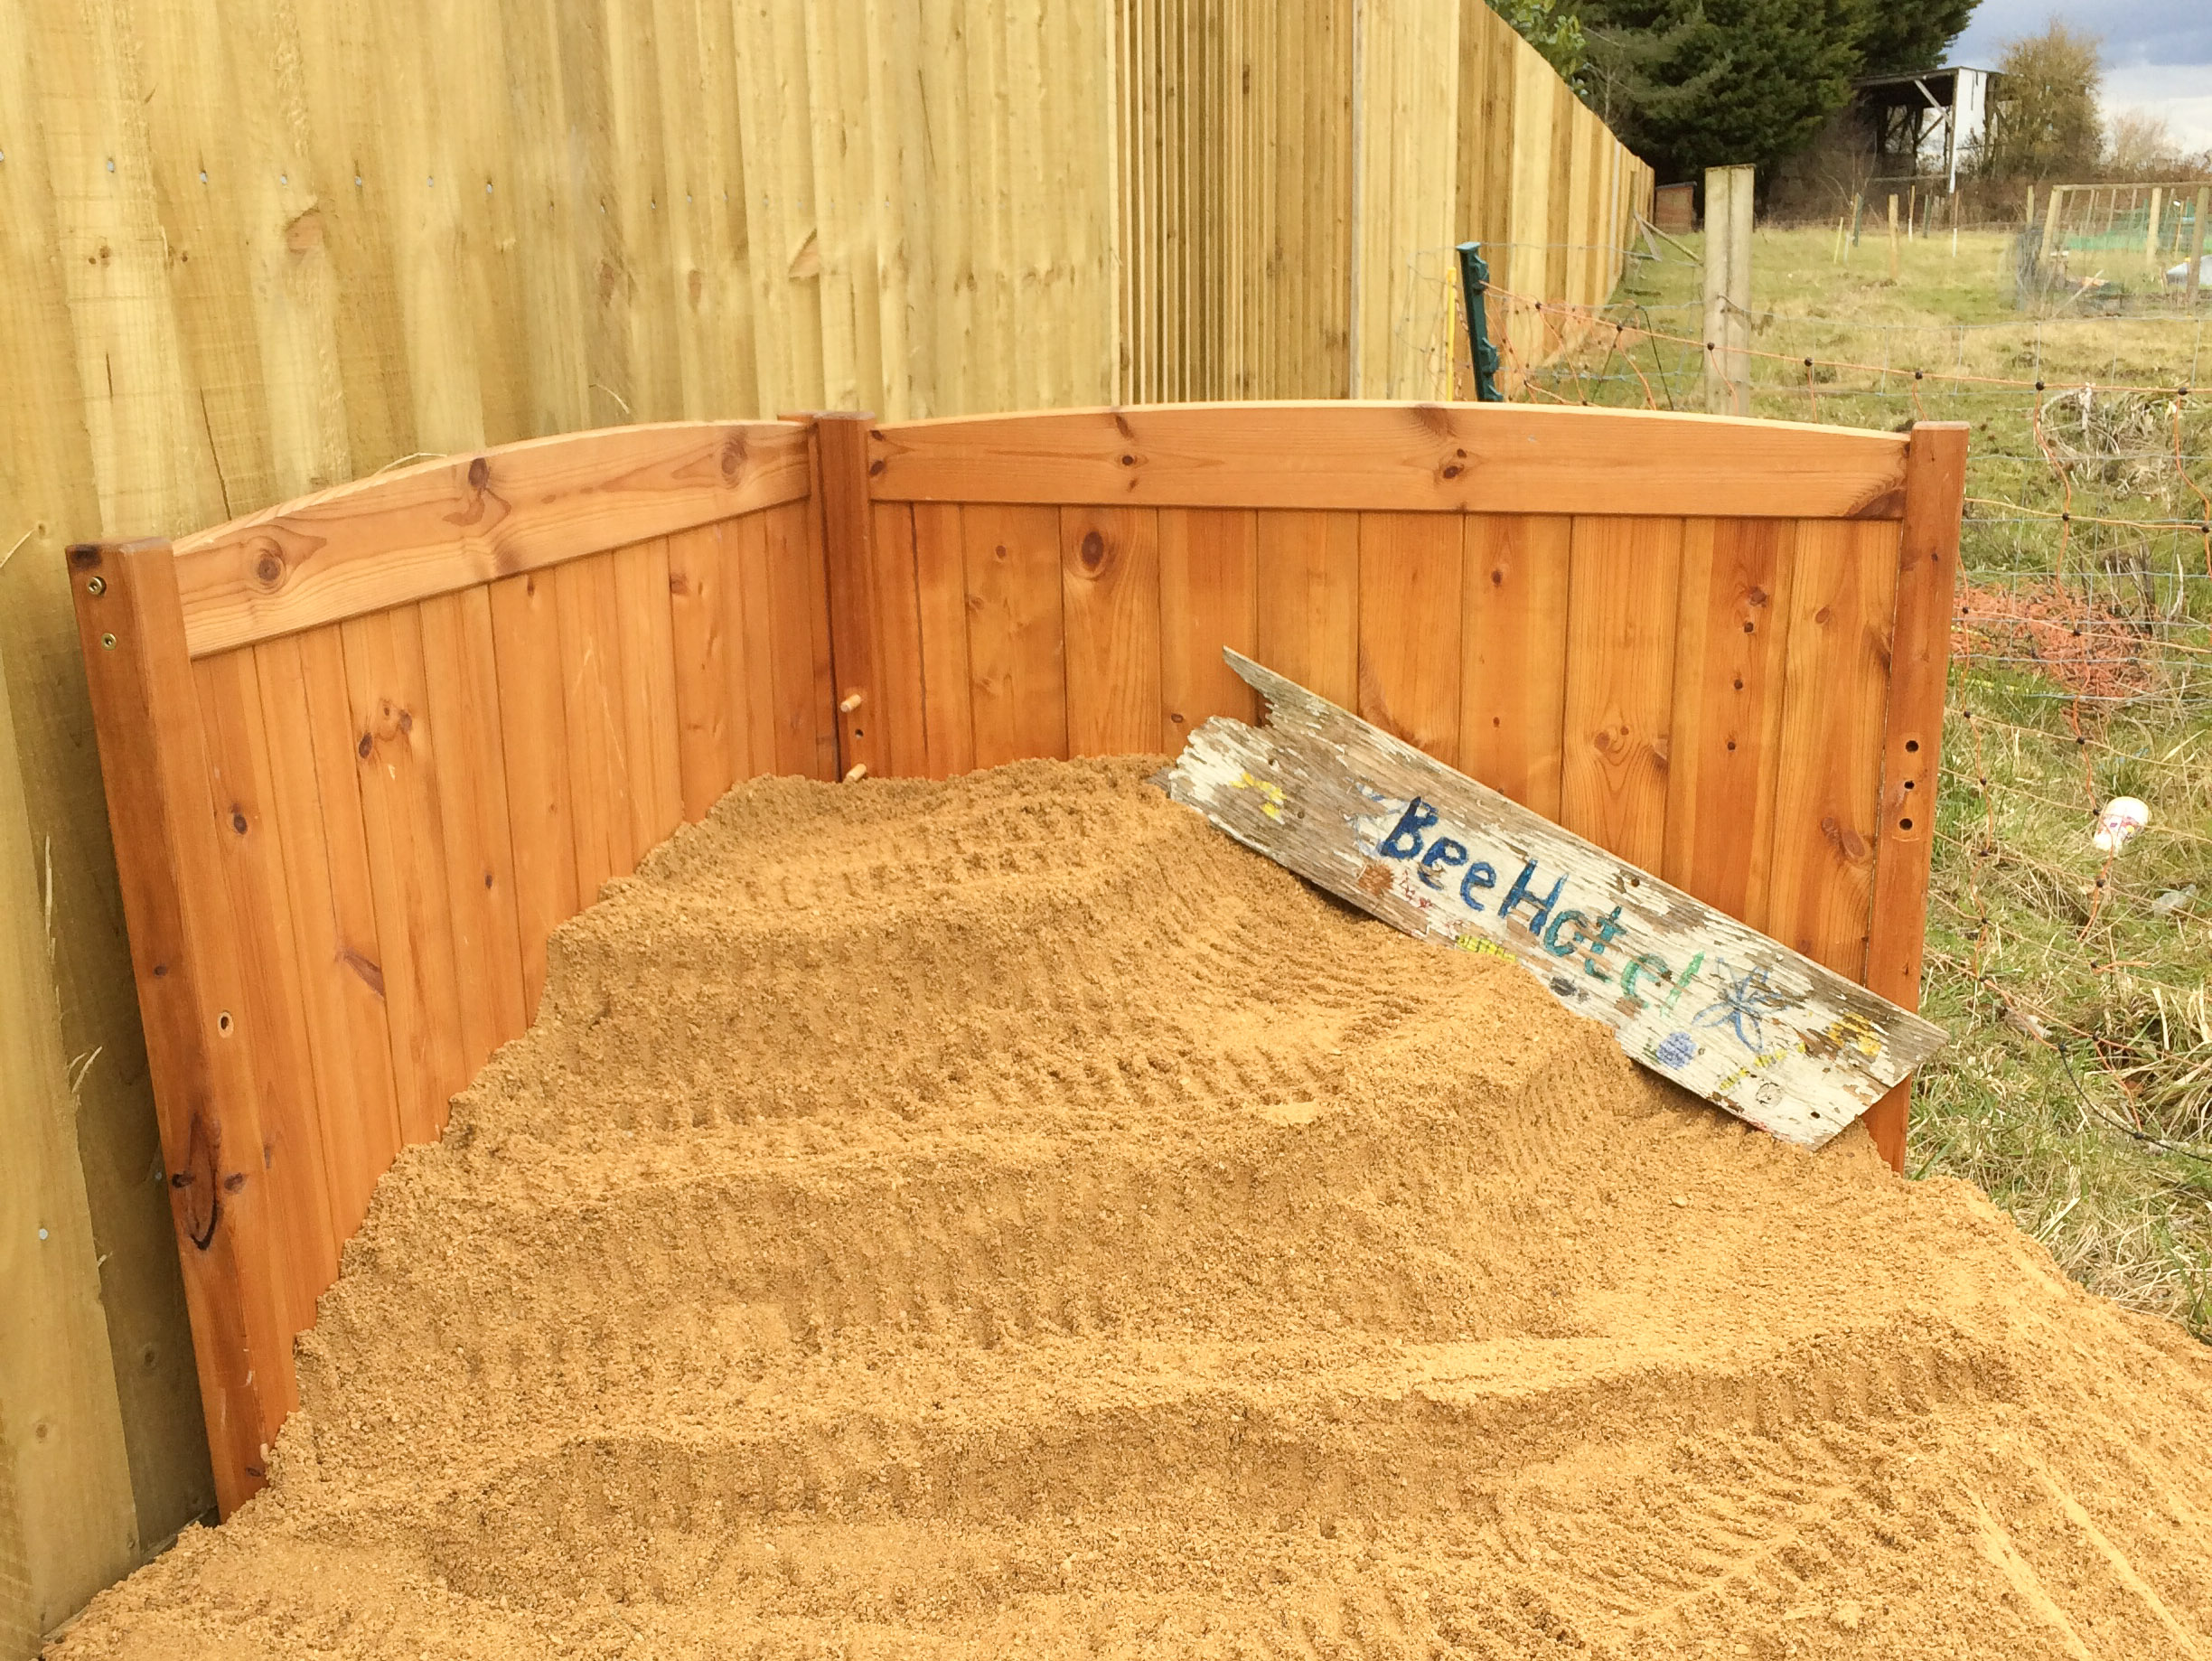 Stepped sand to provide nest site for solitary bees either horizontally or vertically